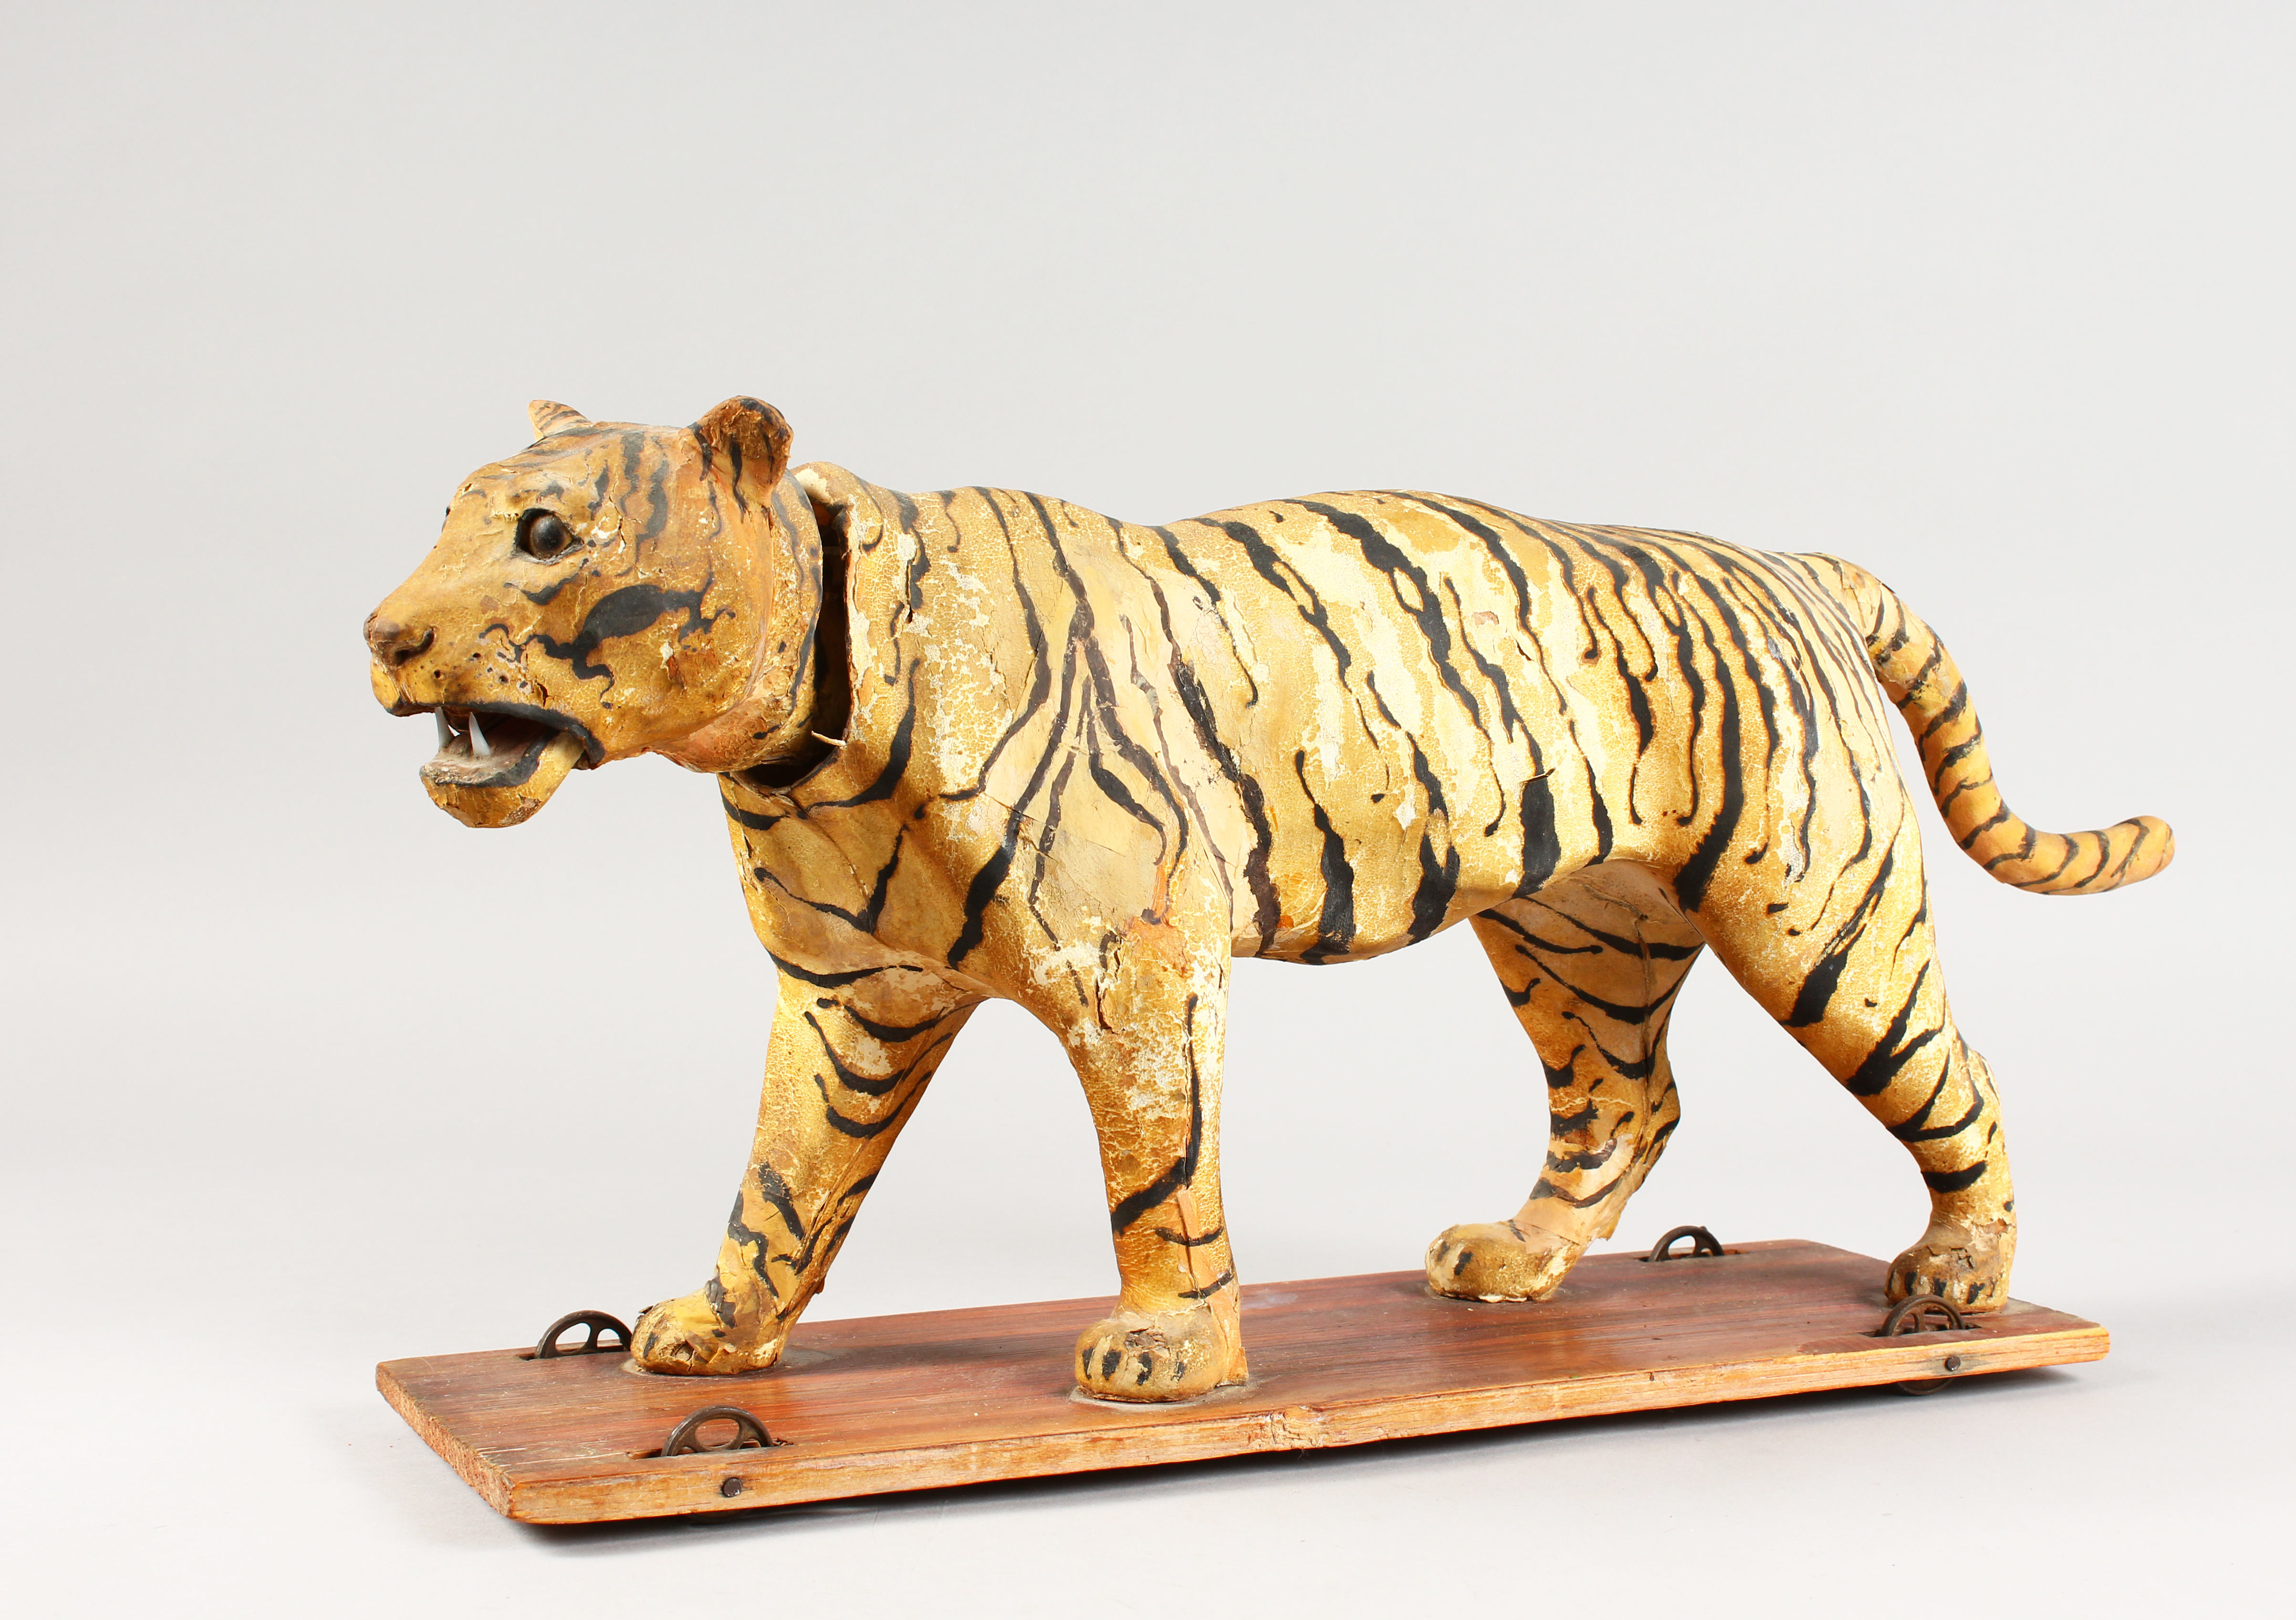 A Victorian automated Tiger with nodding head on a wooden base with wheels./Auctioneers and Valuers